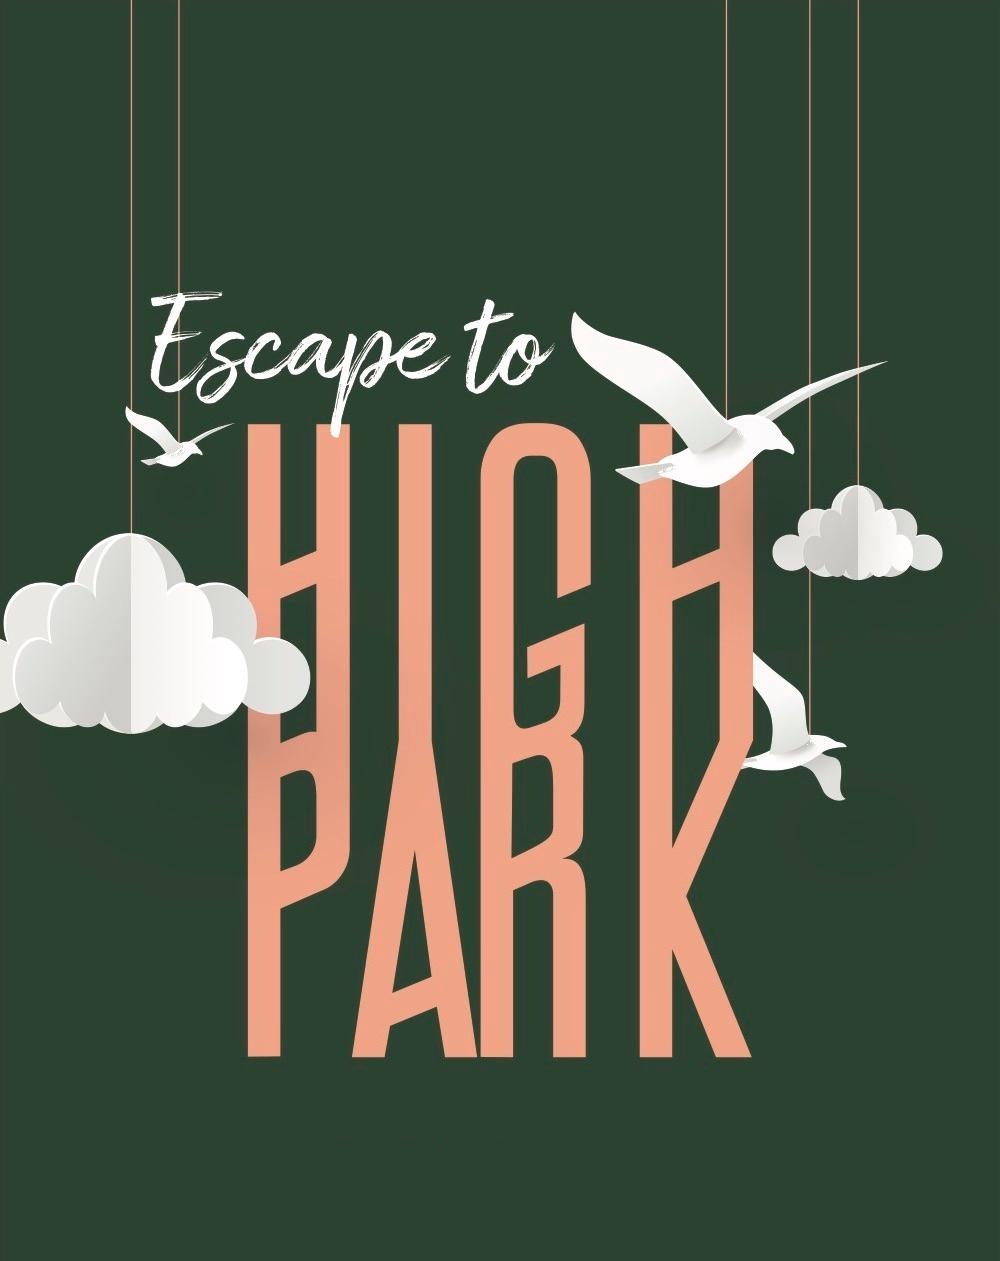 Escape_to_High_Park_Small